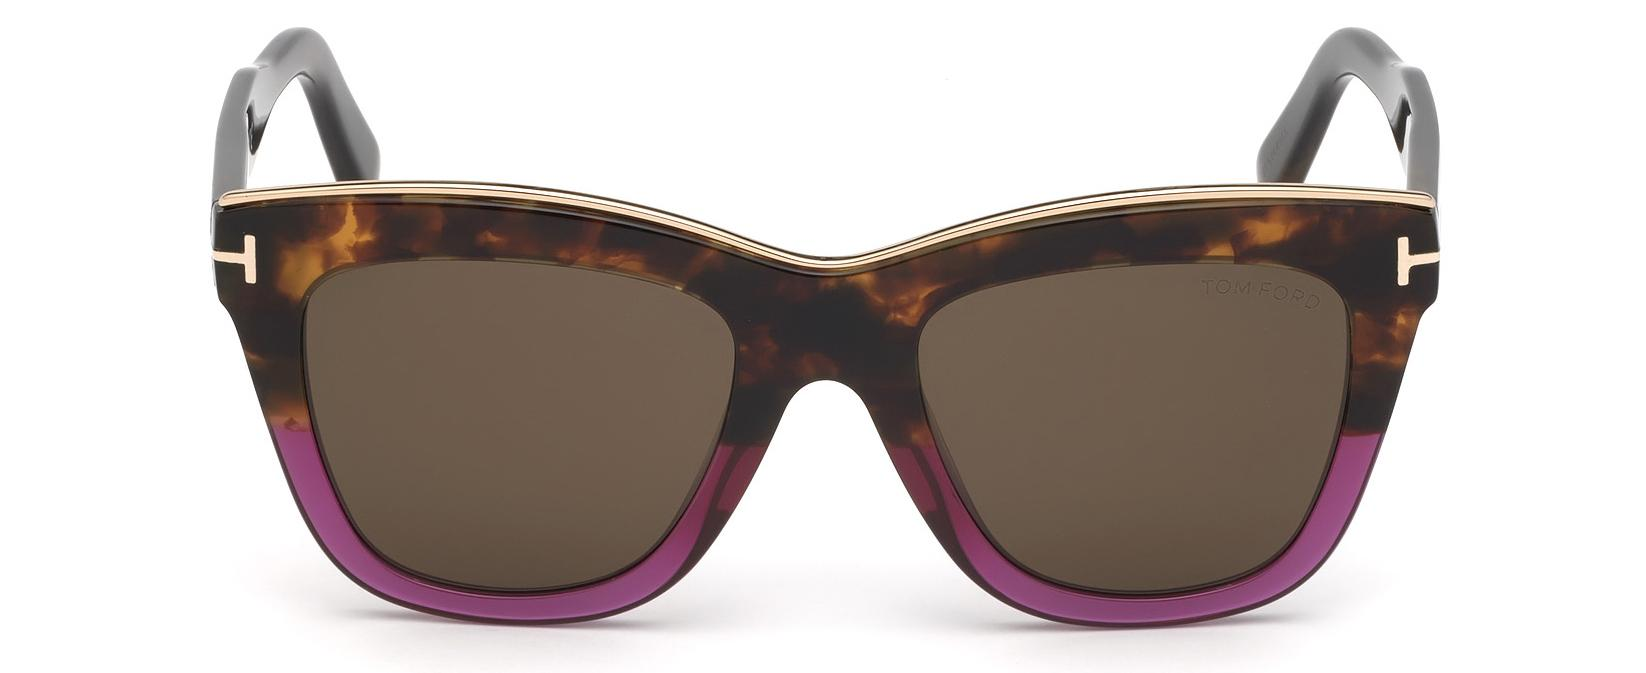 e8dc1bc7298 Lyst - Tom Ford 0685 Julie Cat Eye Sunglasses in Brown